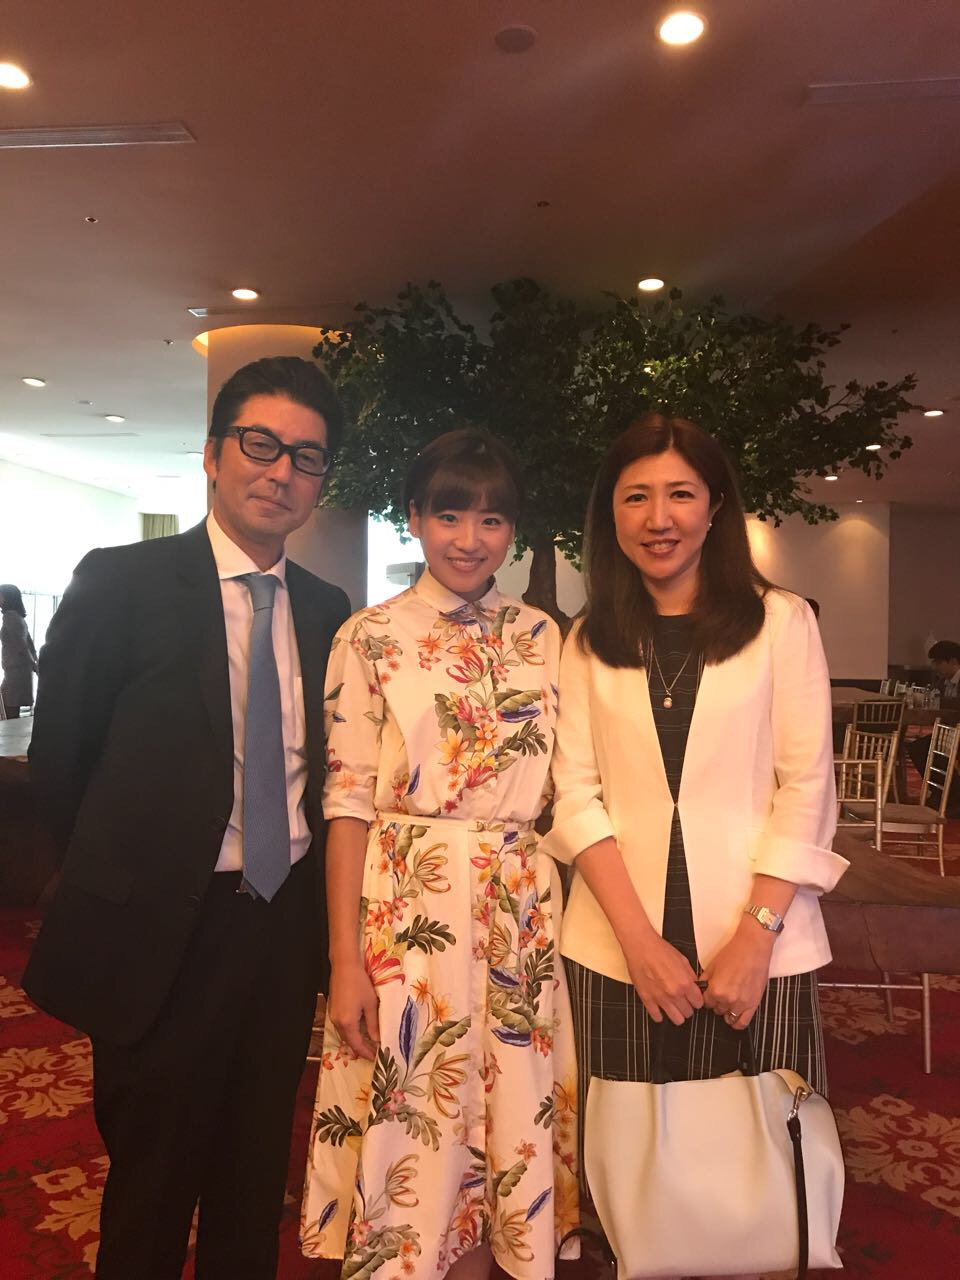 President of PT Marubeni Indonesia with Haruka Nakagawa who actively supported The World of Ghibli Event